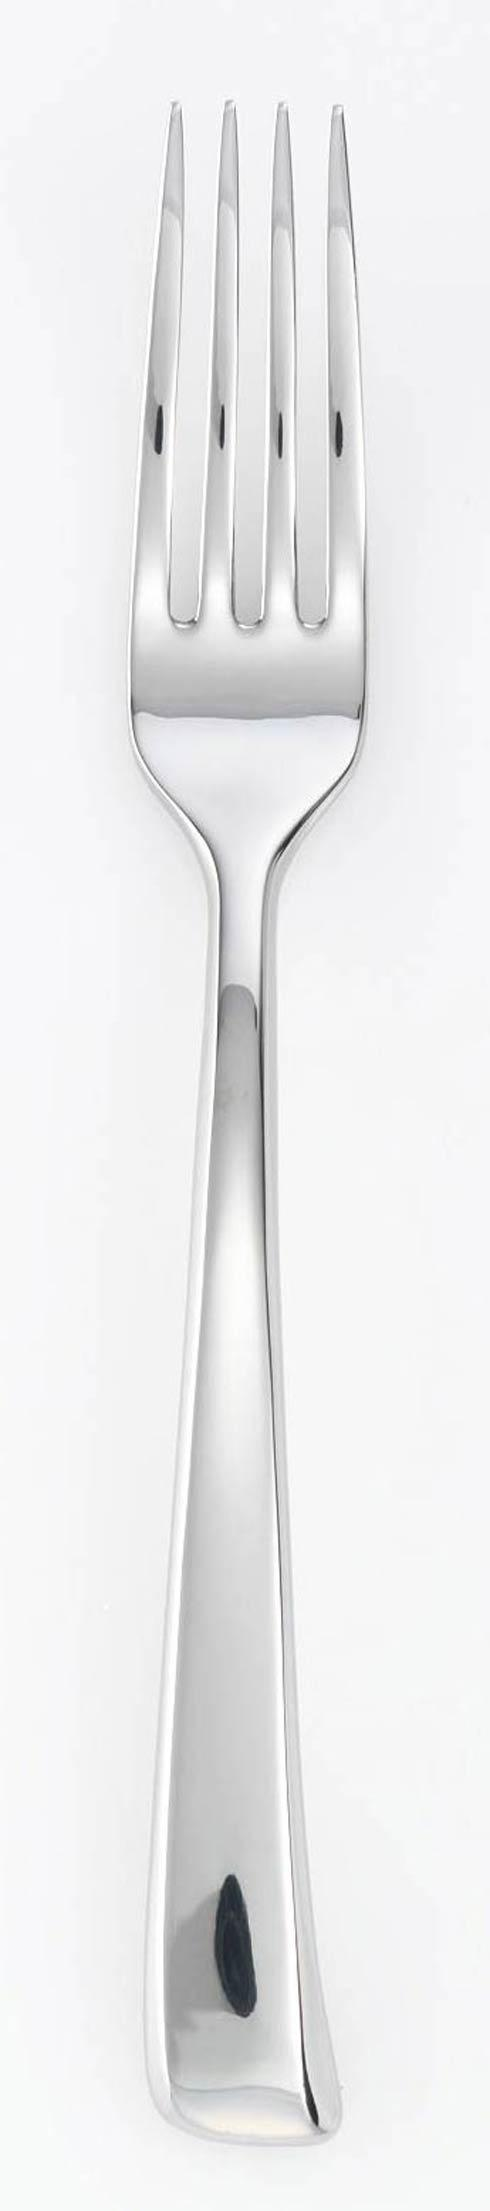 $22.00 Table Fork